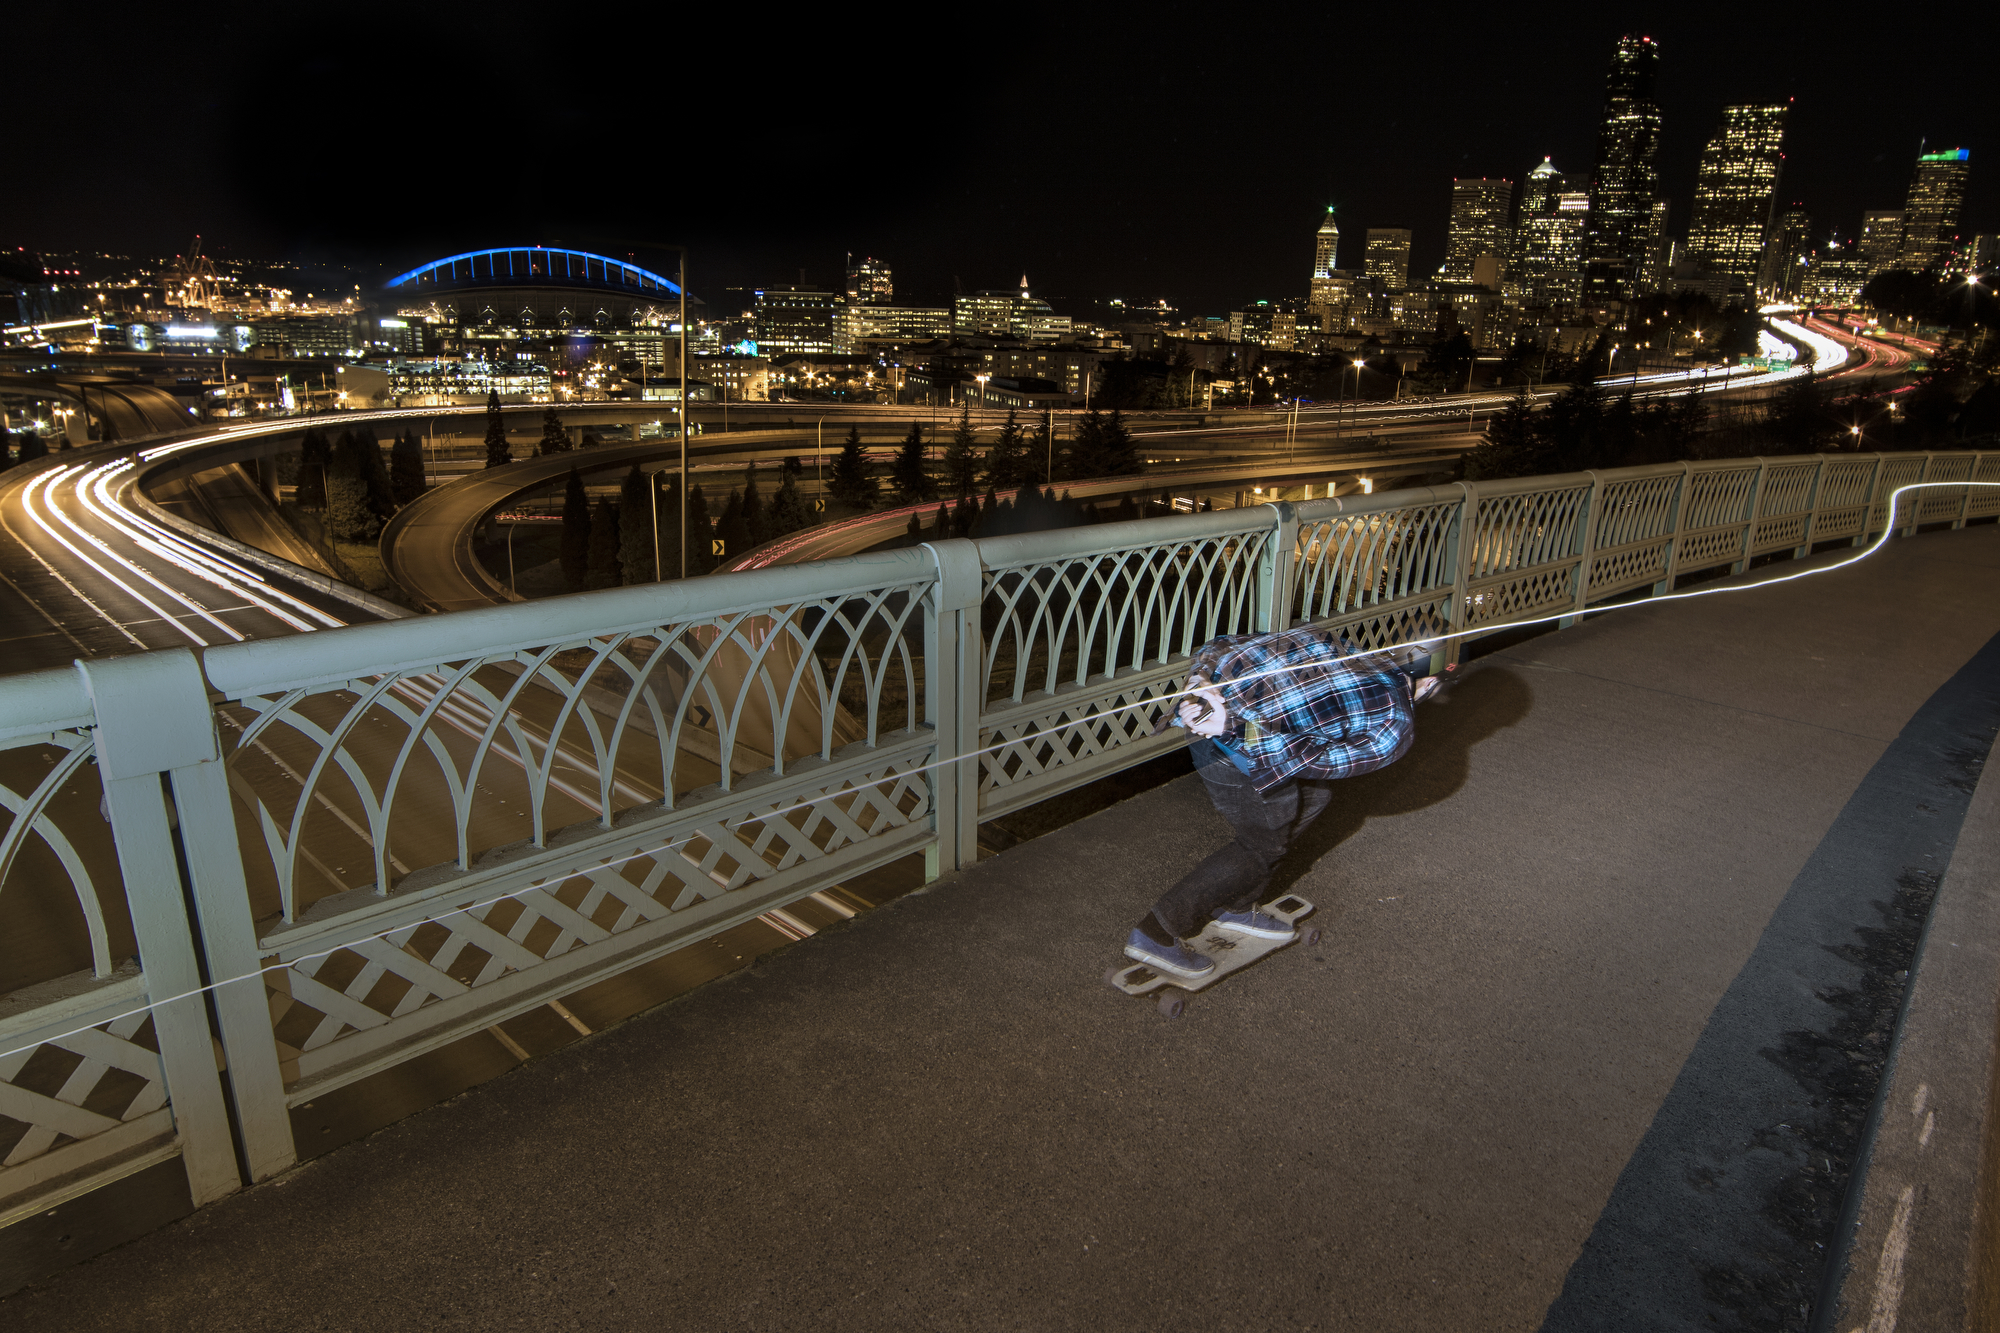 Richard Docter cruise through Seattle on his DB Longboard at night. Here's Richard riding along Dr Jose P Rizal Bridge in Beacon Hill taking in the view of Interstate-5 running through Seattle.